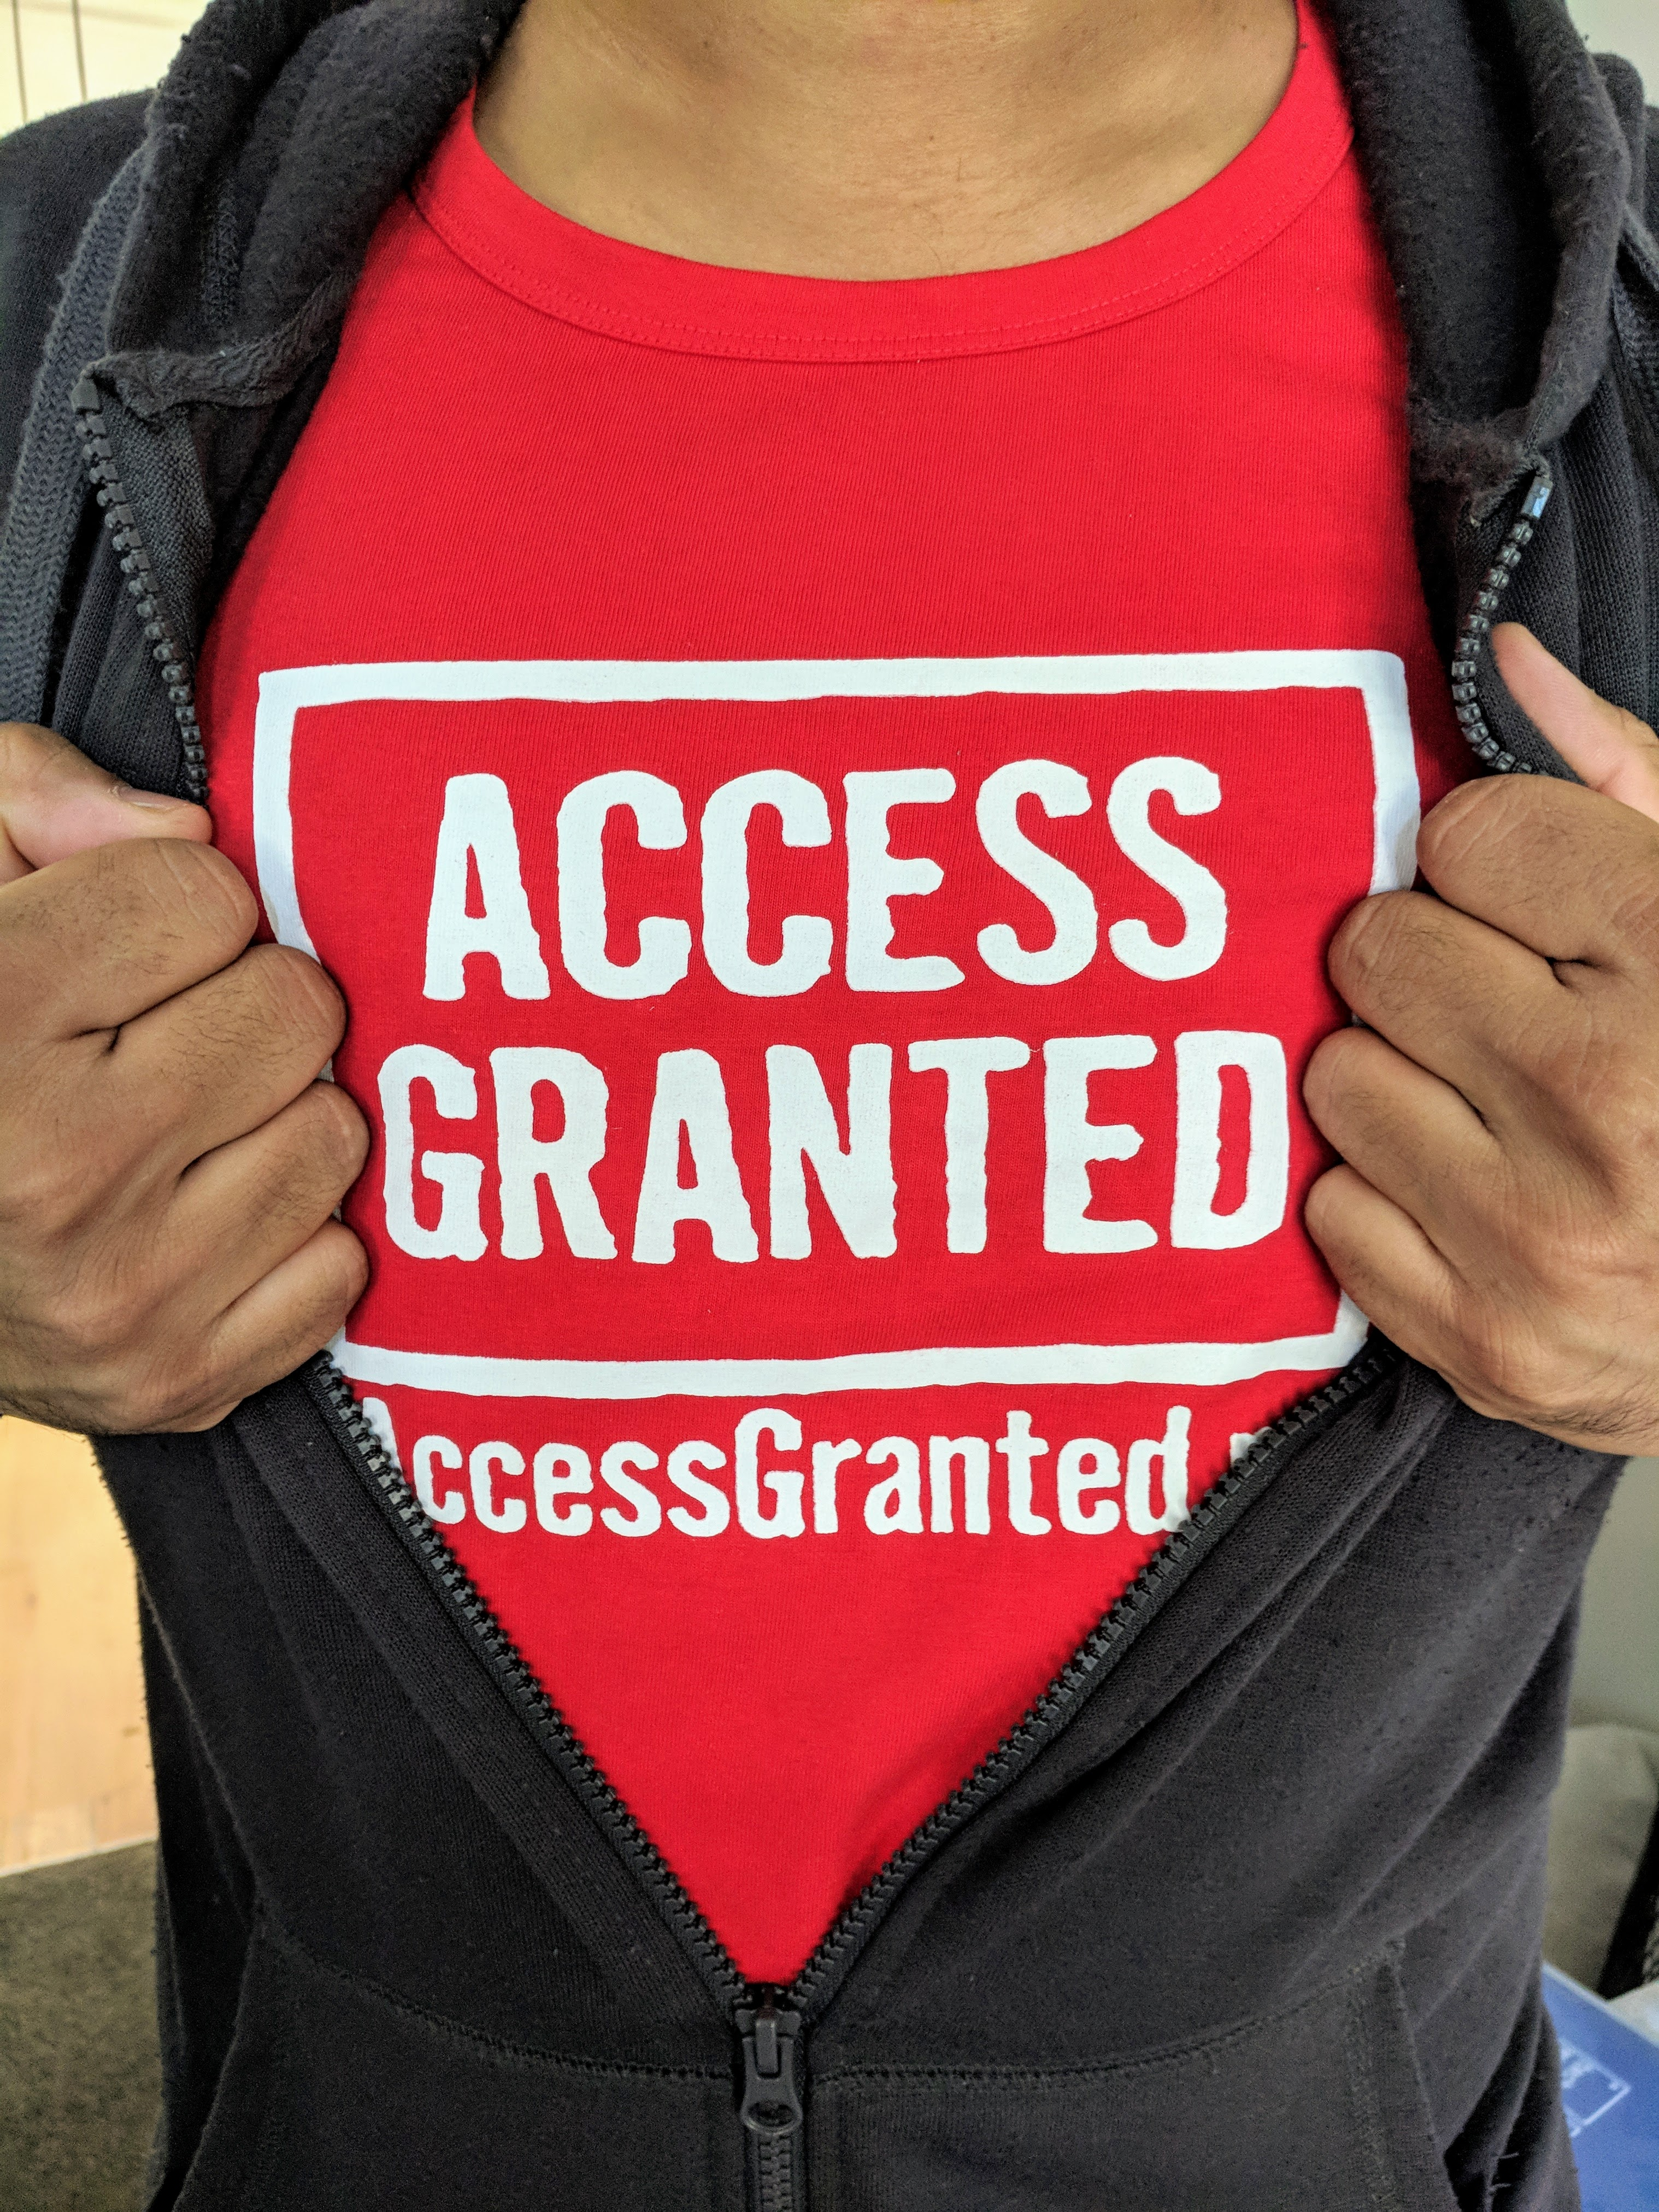 Access Granted NZ host, Raj, suits up